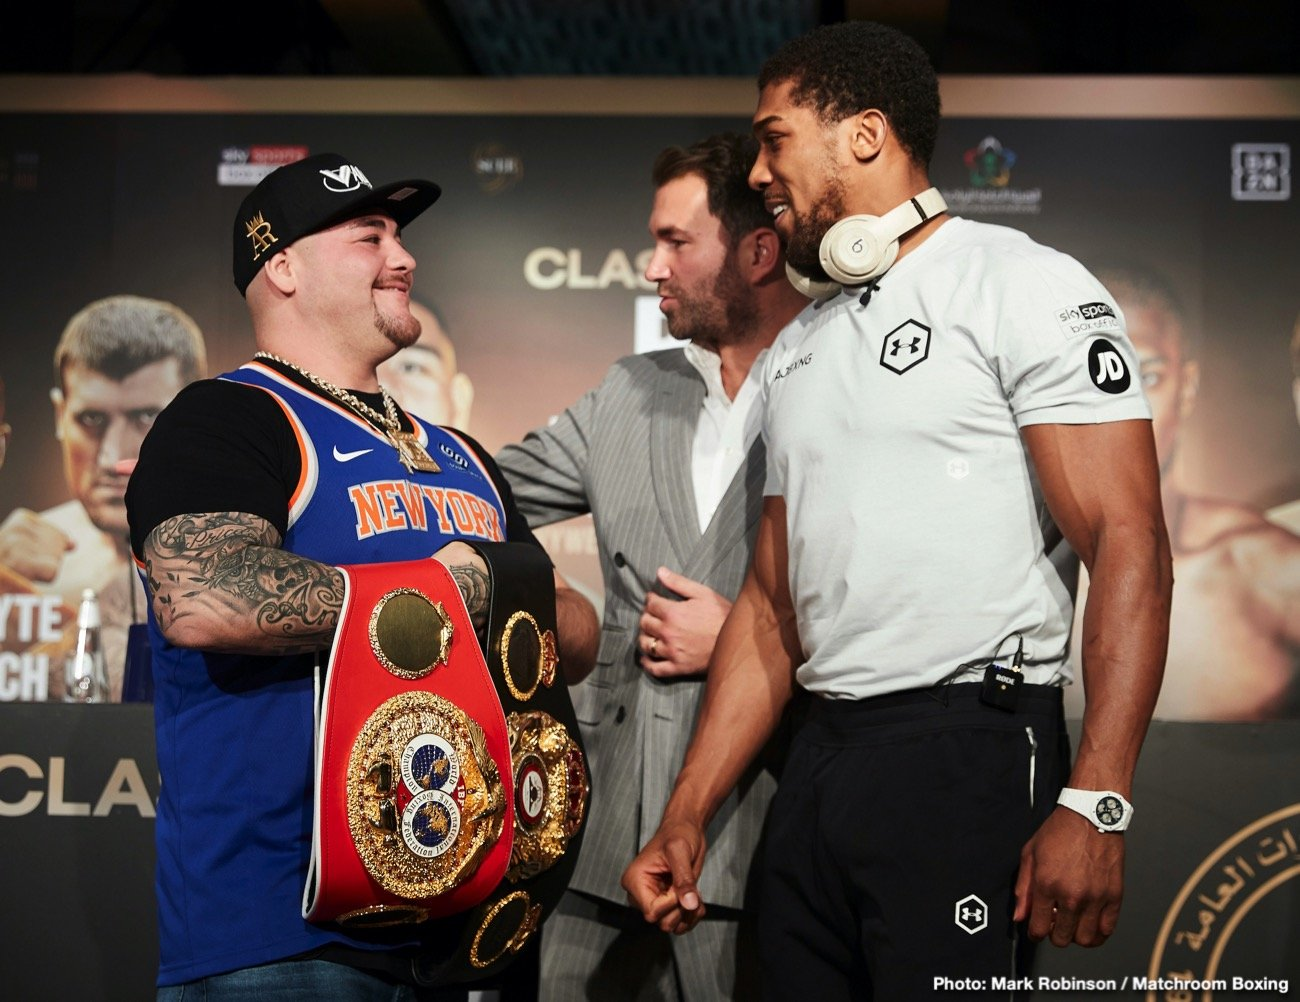 Andy Ruiz, Anthony Joshua - Will it be repeat or revenge in Saudi Arabia on Saturday night (approx 9PM UK time)? Anthony Joshua is confident he will get revenge for his shock June defeat to Andy Ruiz, by knockout, and the former heavyweight champion also feels he and Ruiz will box a trilogy.